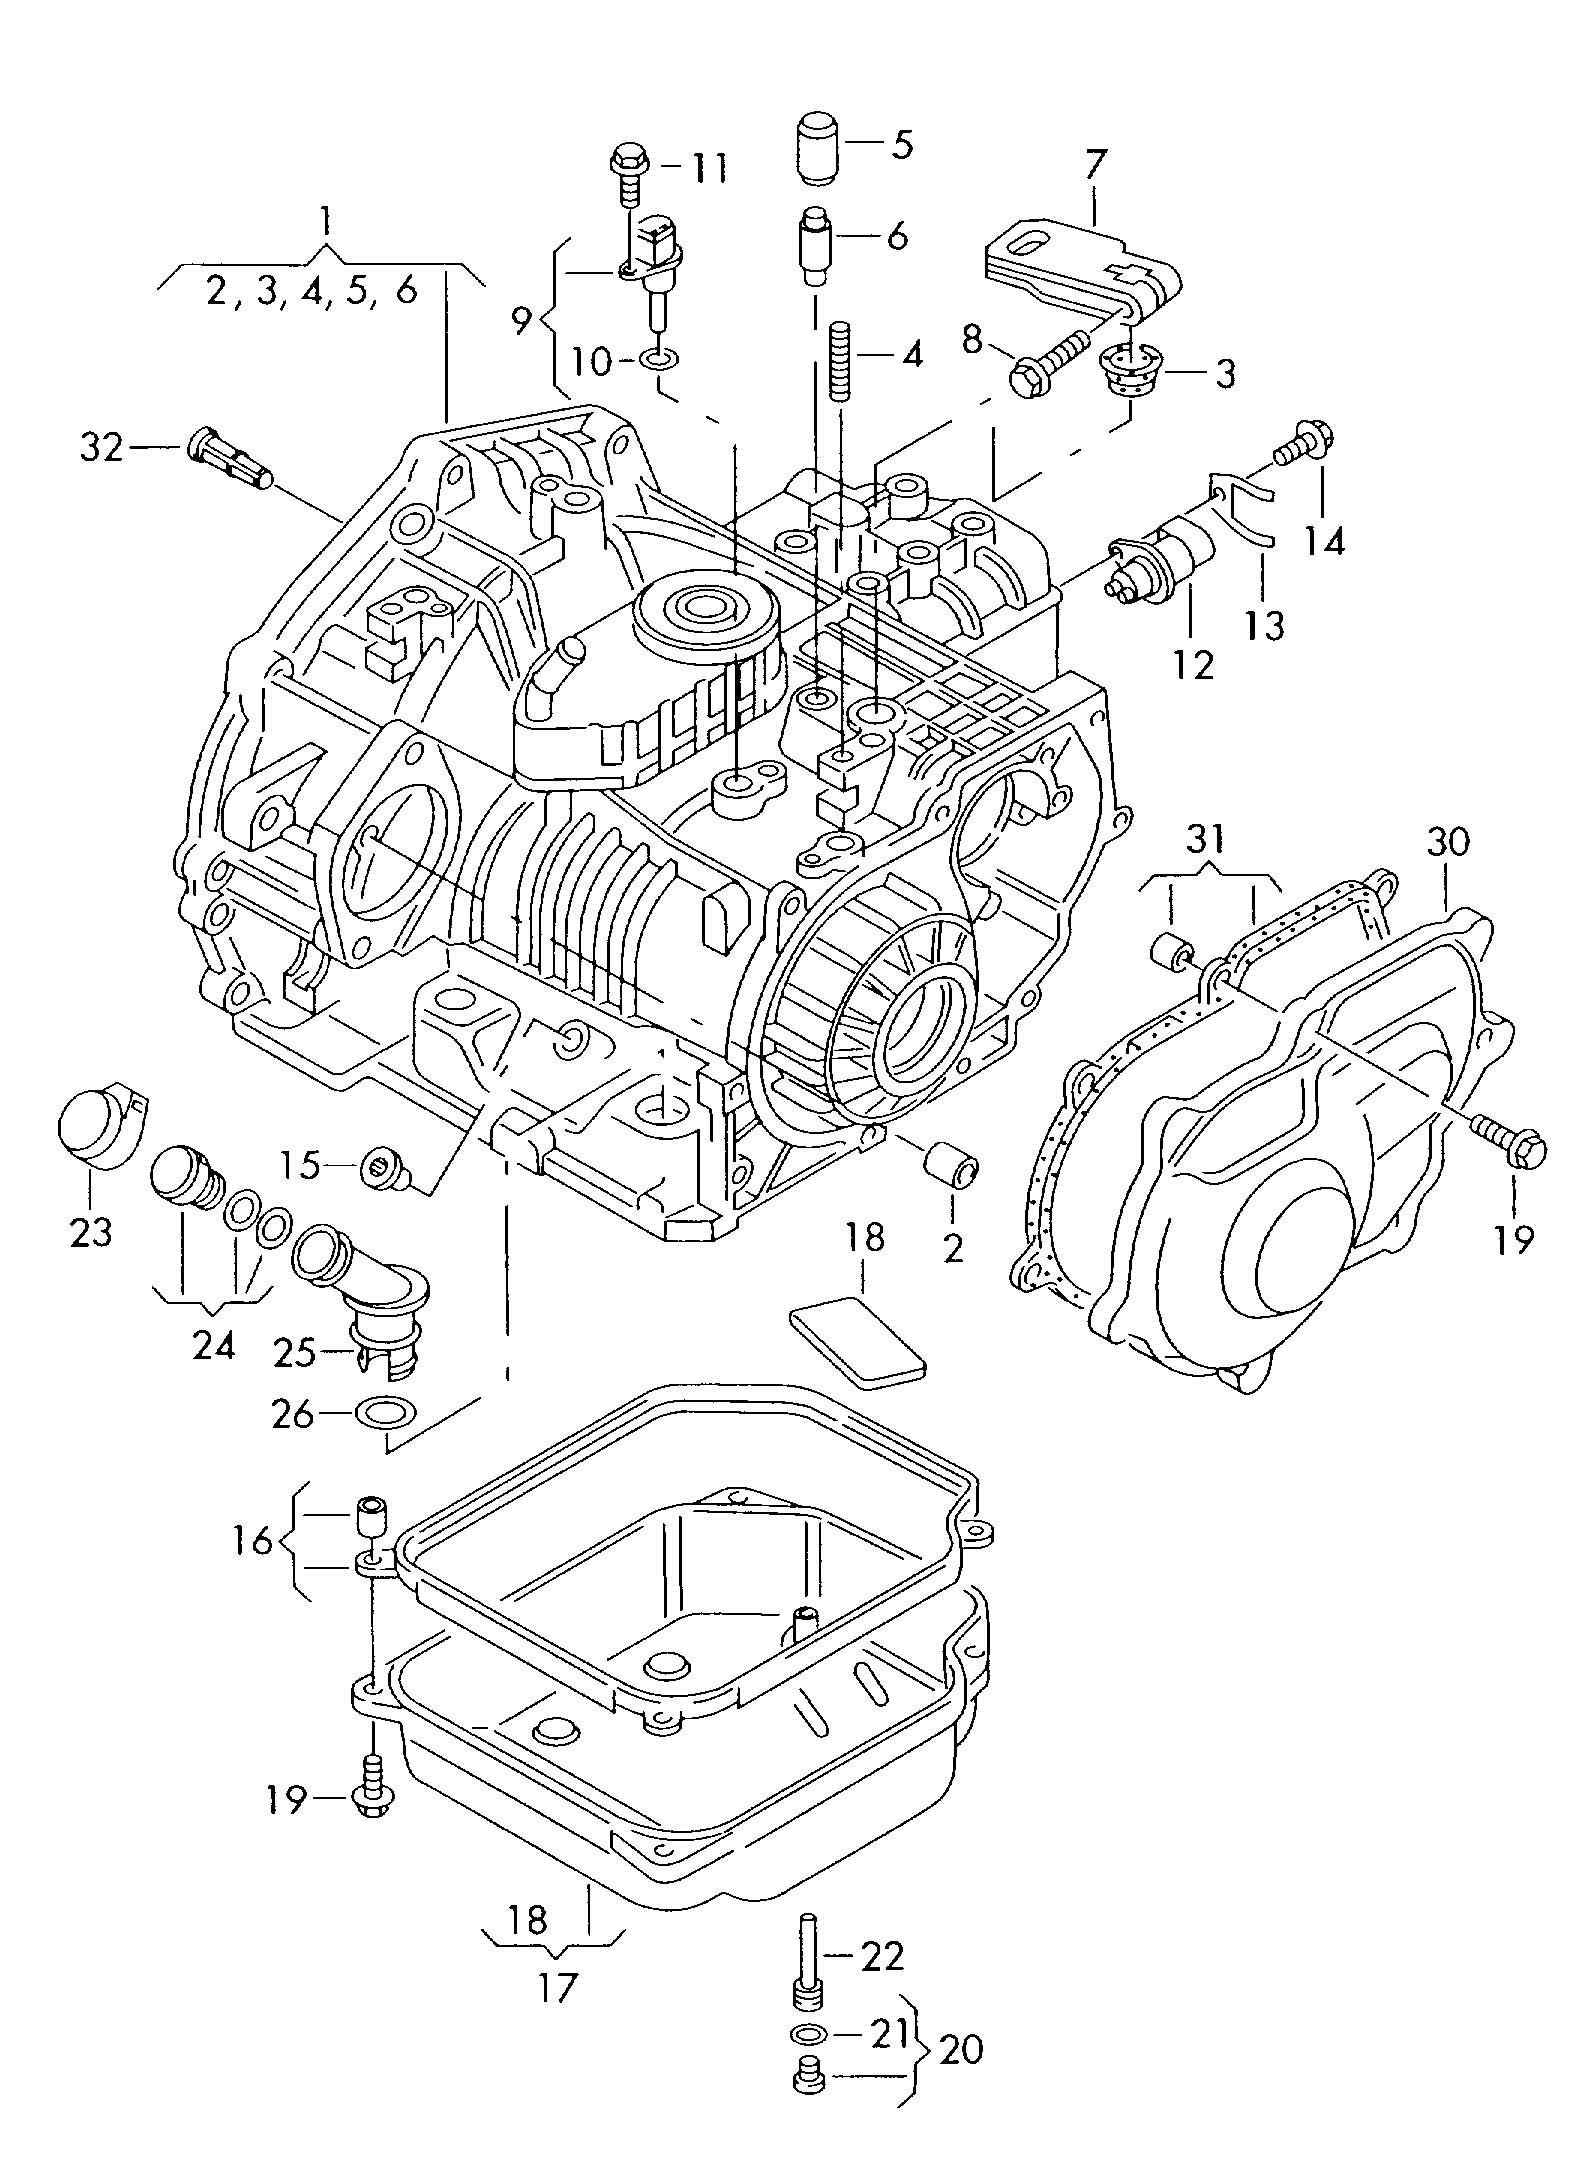 Volkswagen Transaxle Parts Diagram Wiring Diagrams Subaru 265cc Engine 2002 Jetta Auto Type 2